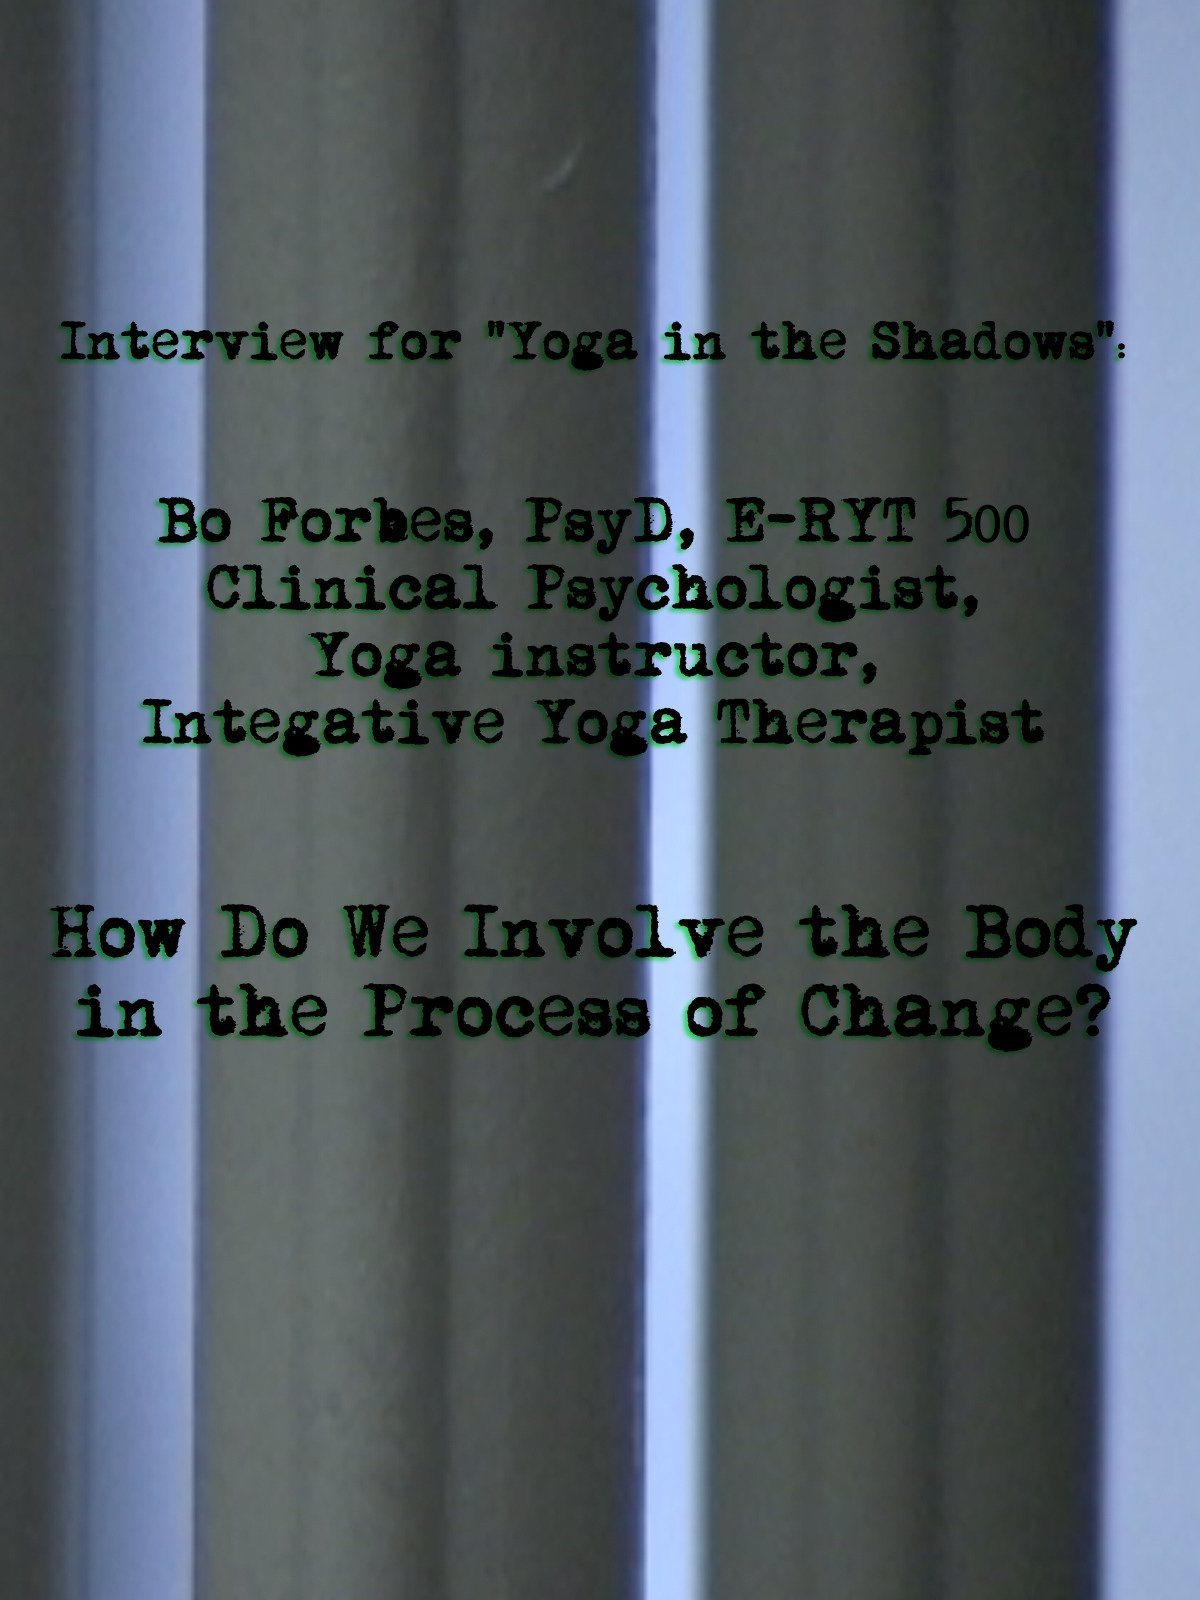 Clip: Interview with Bo Forbes: How Do We Involve the Body in the Process of Change?